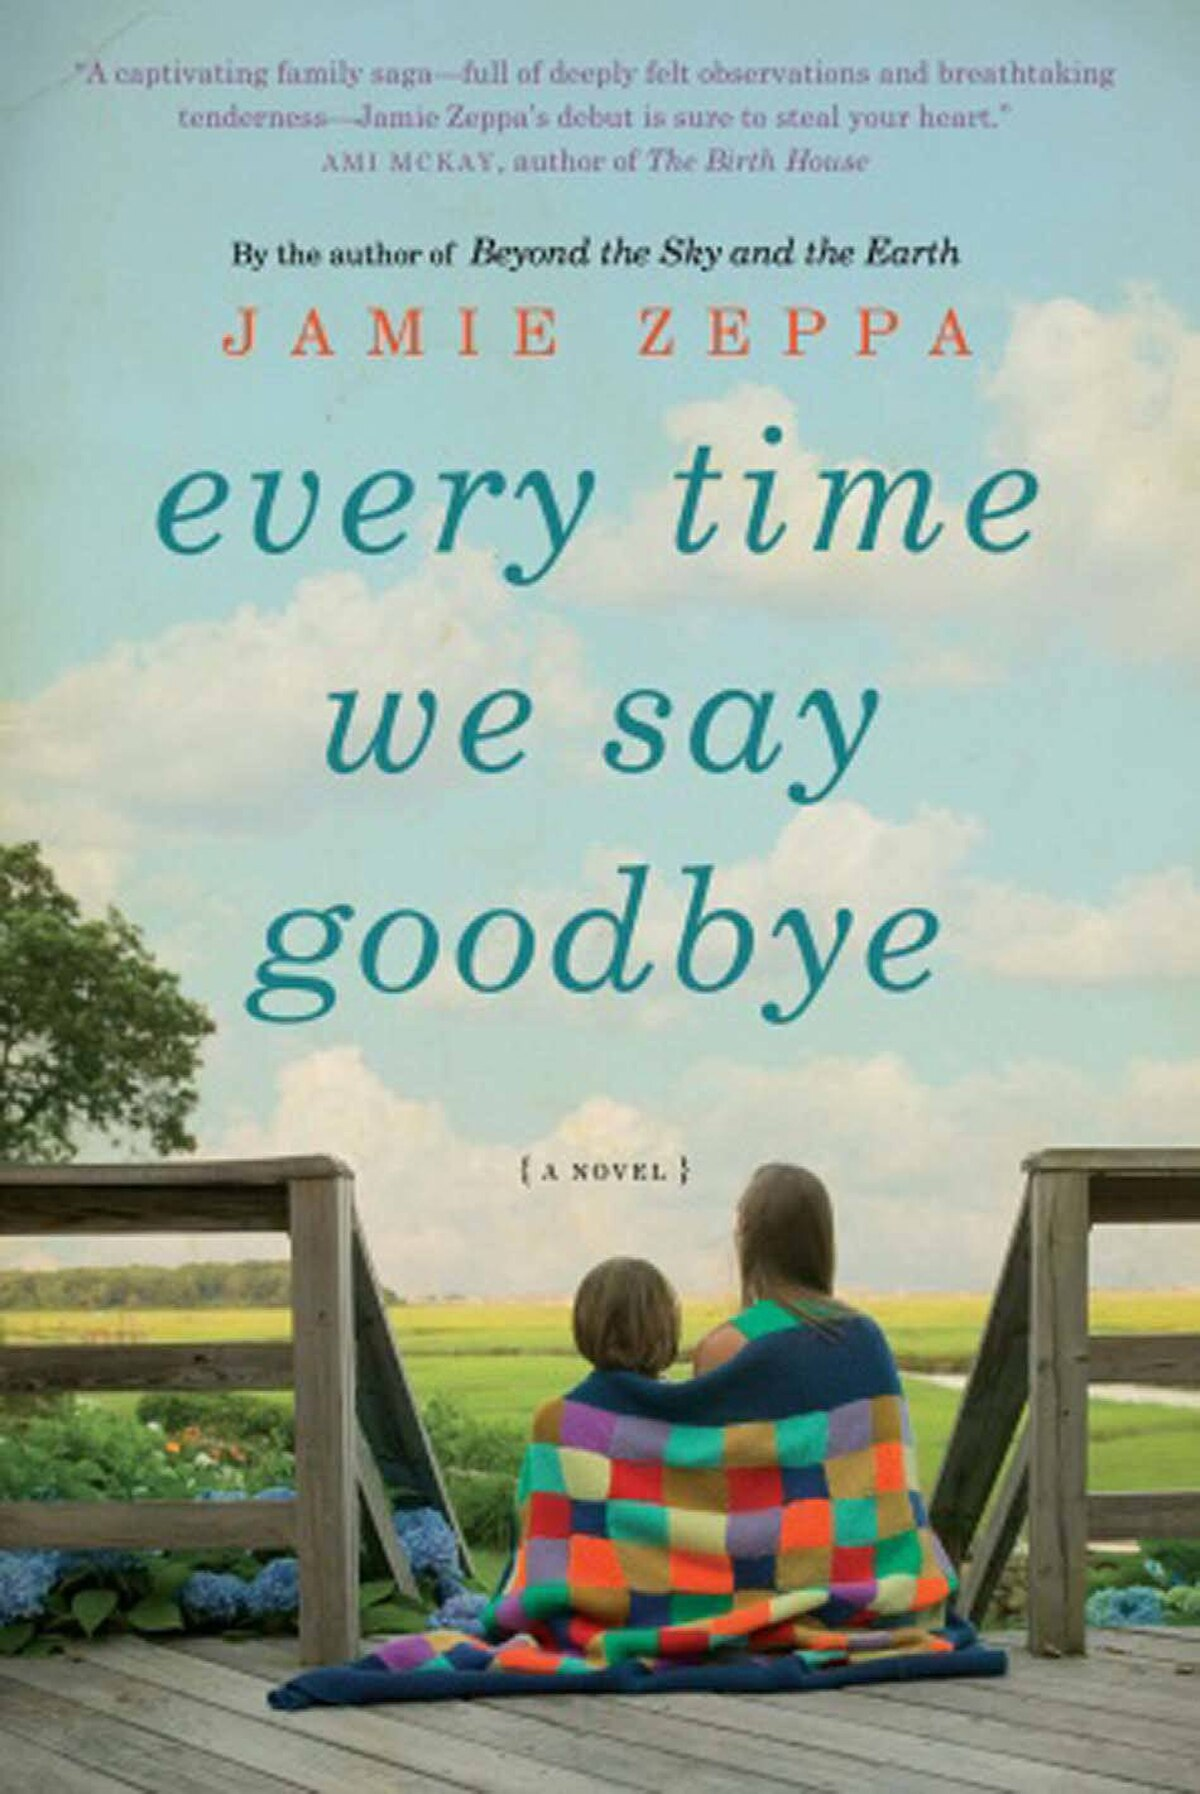 EVERY TIME WE SAY GOODBYE By Jamie Zeppa (Knopf Canada) Zeppa's first novel explores three generations of a Canadian family in Sault Ste. Marie, Ont., spreading out the full spectrum of the human experience in an unpretentious and thoroughly convincing way. She takes us from the Depression to the late 1970s as smoothly as if we were on a guided tour in a time machine. – William Kowalski